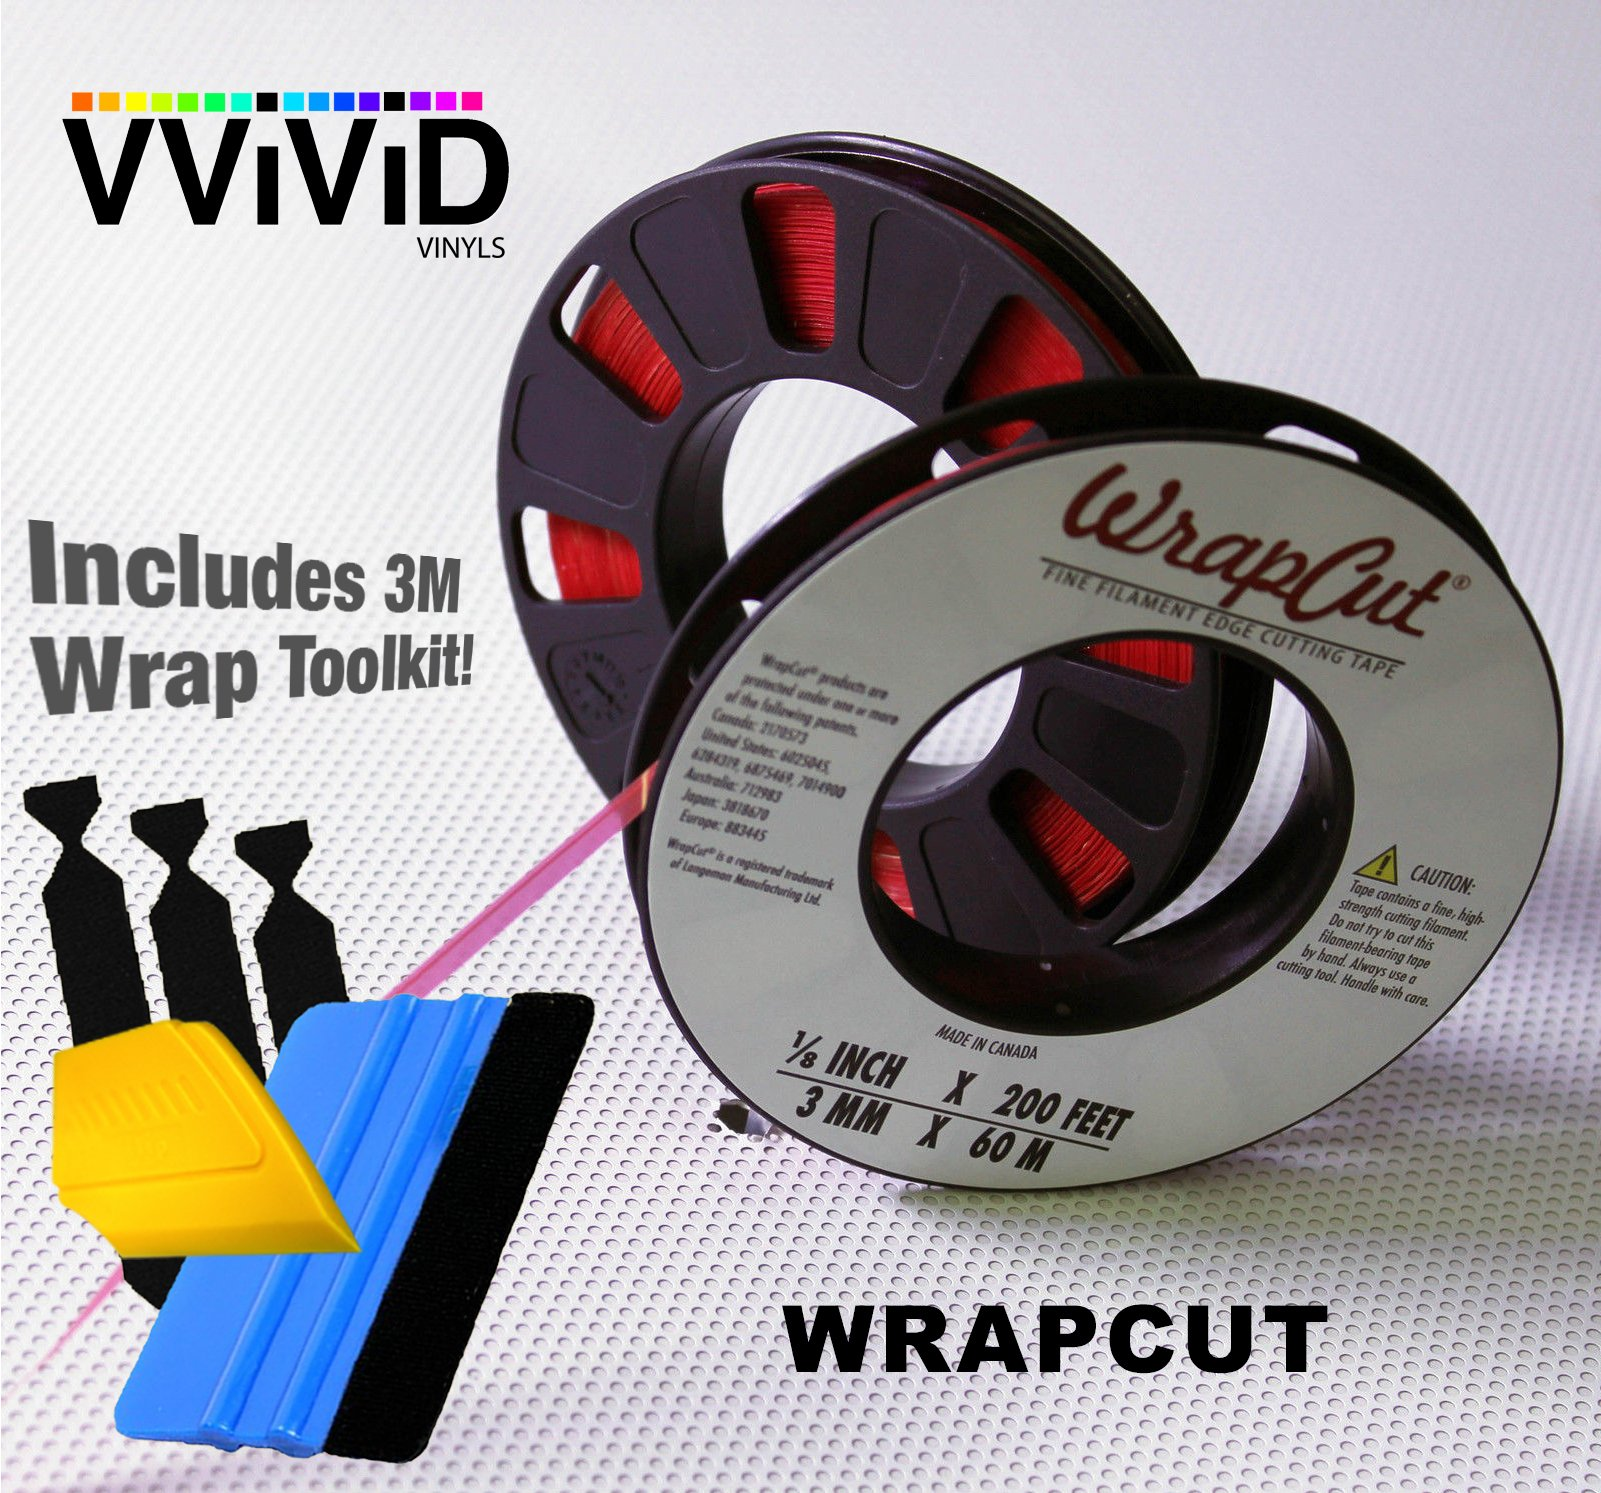 VViViD Wrap Cut Vinyl Wrap Edge Cutting Detailer Tape 200ft Including 3M Vinyl Wrap Toolkit (5 Rolls w/Toolkit (Squeegee, Detailer, 3 Felts))